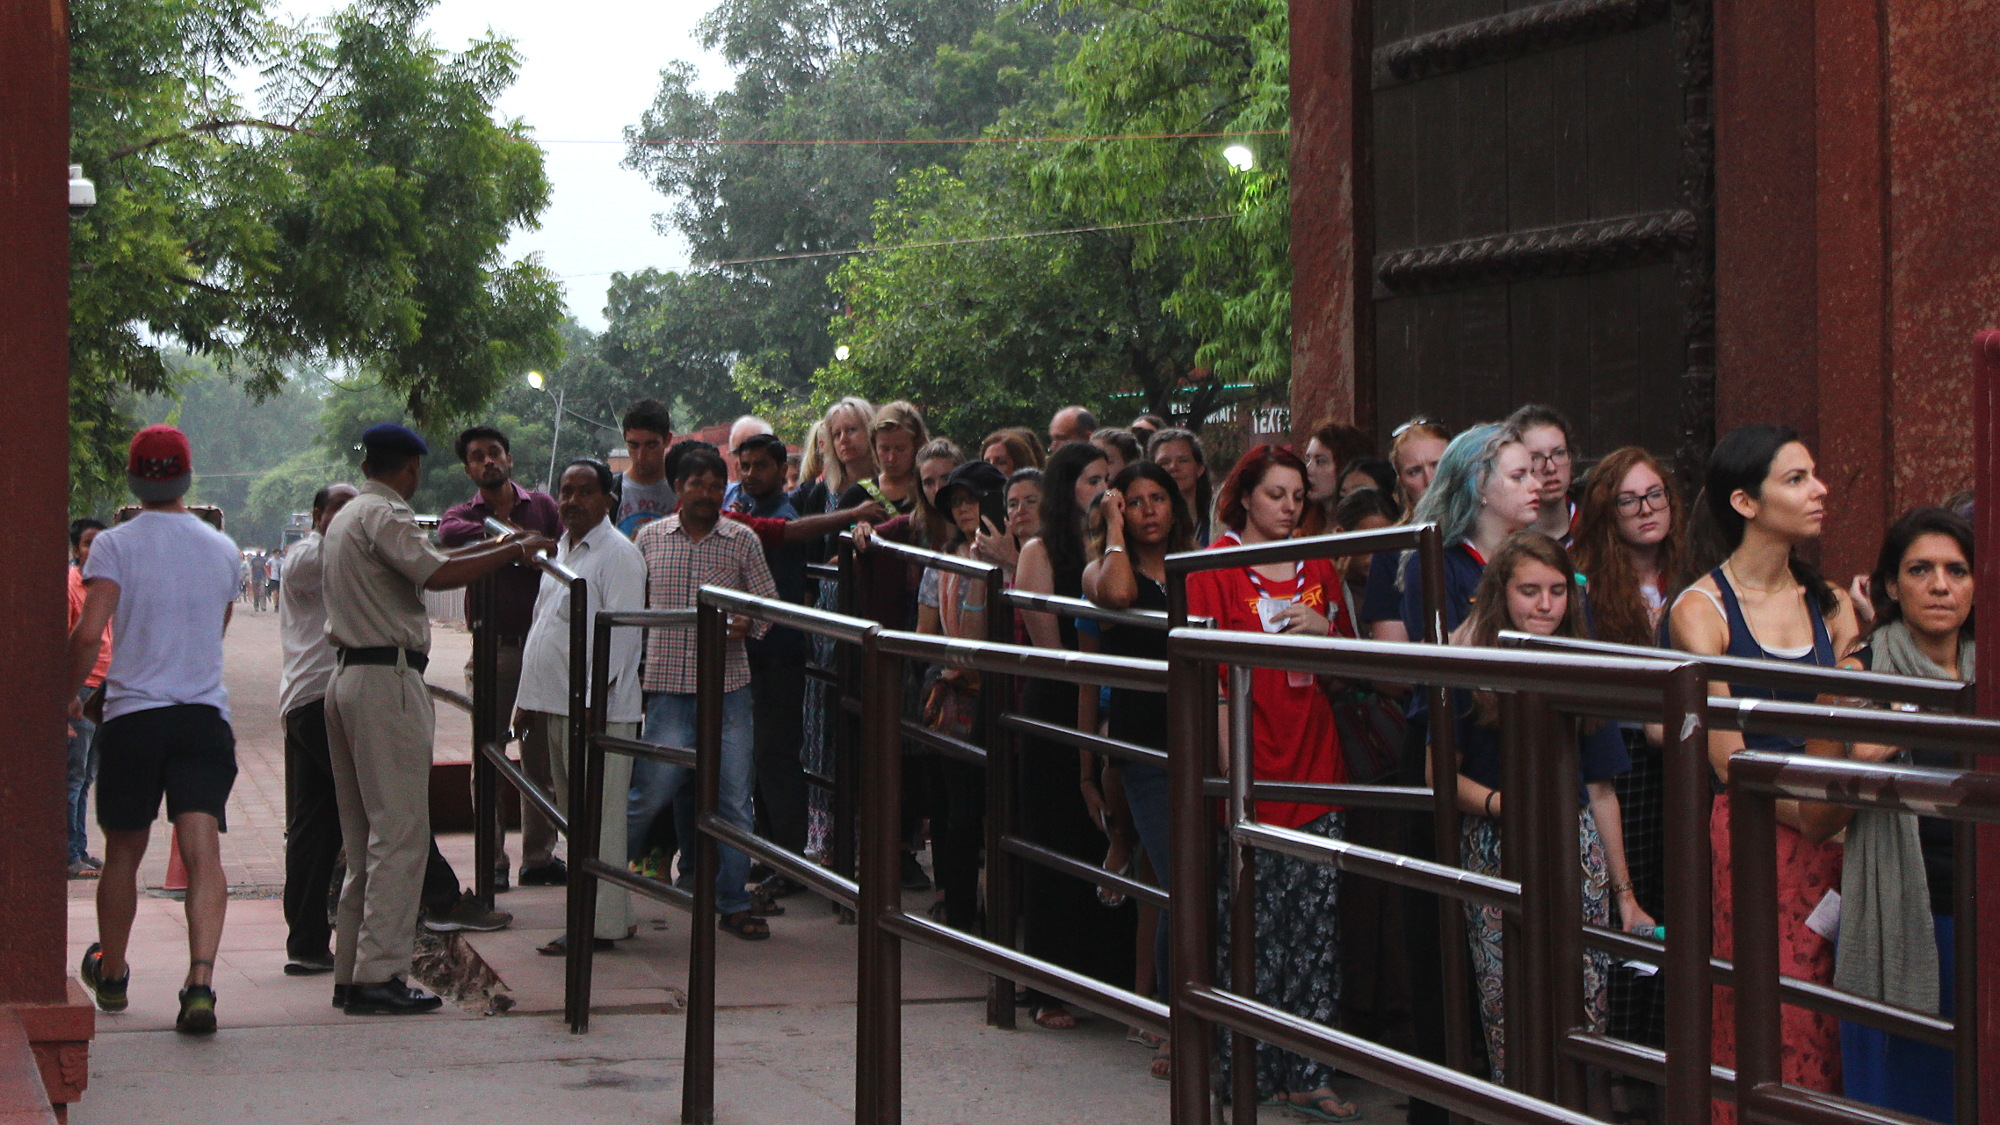 Men and women have separate lines at the entrance to Taj Mahal. The line for men is empty at sunrise, while the line for women continues behind the corner.